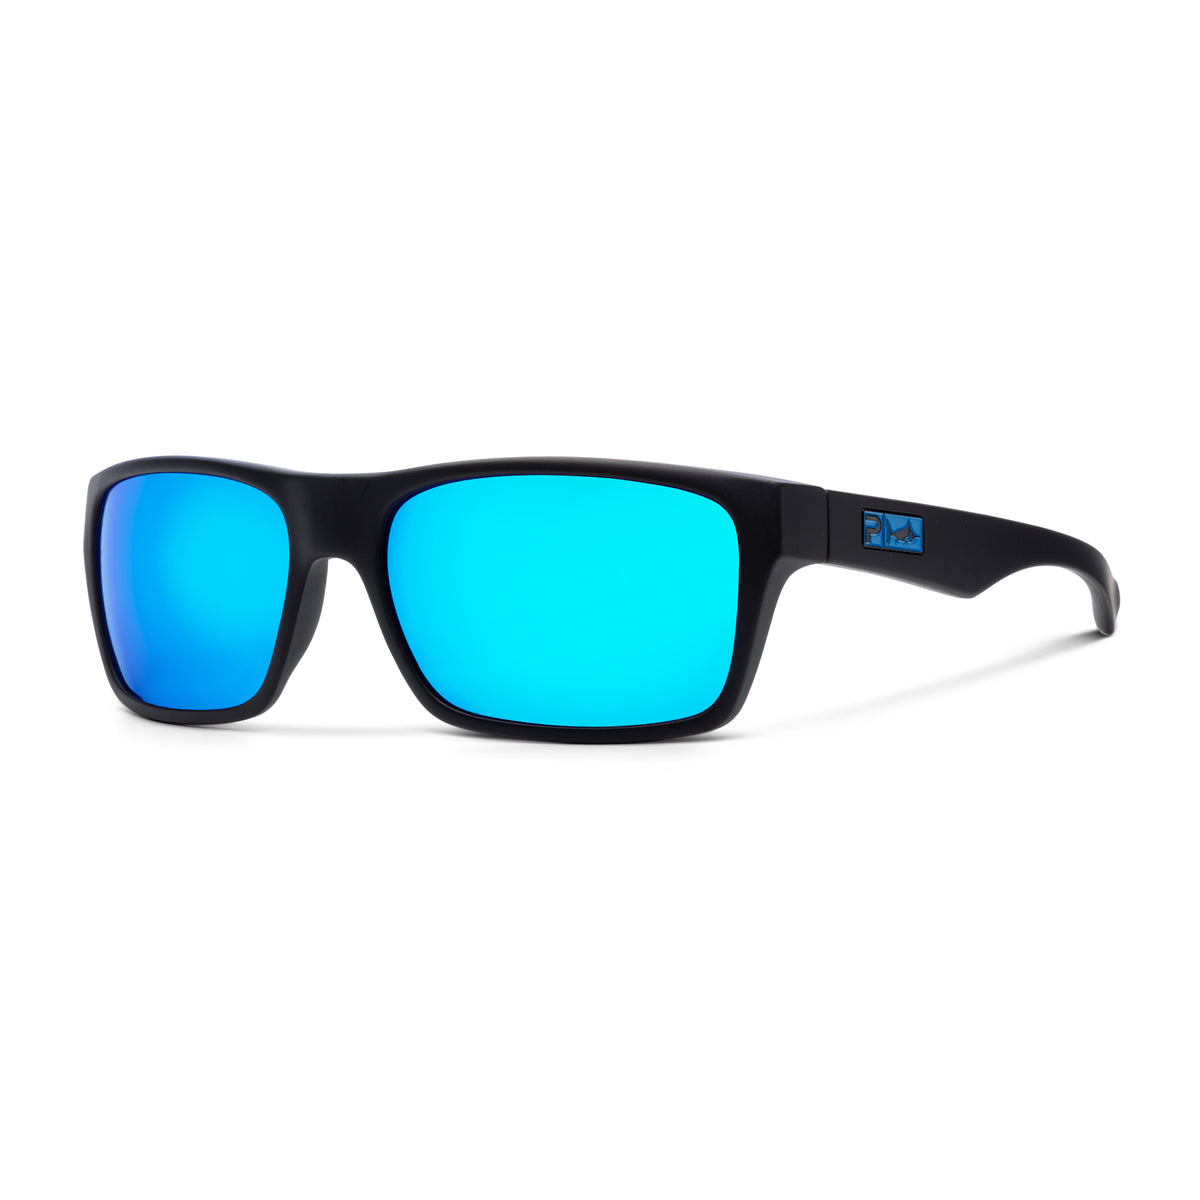 Fish Taco - Polarized Polycarbonate Lens Big Image - 3